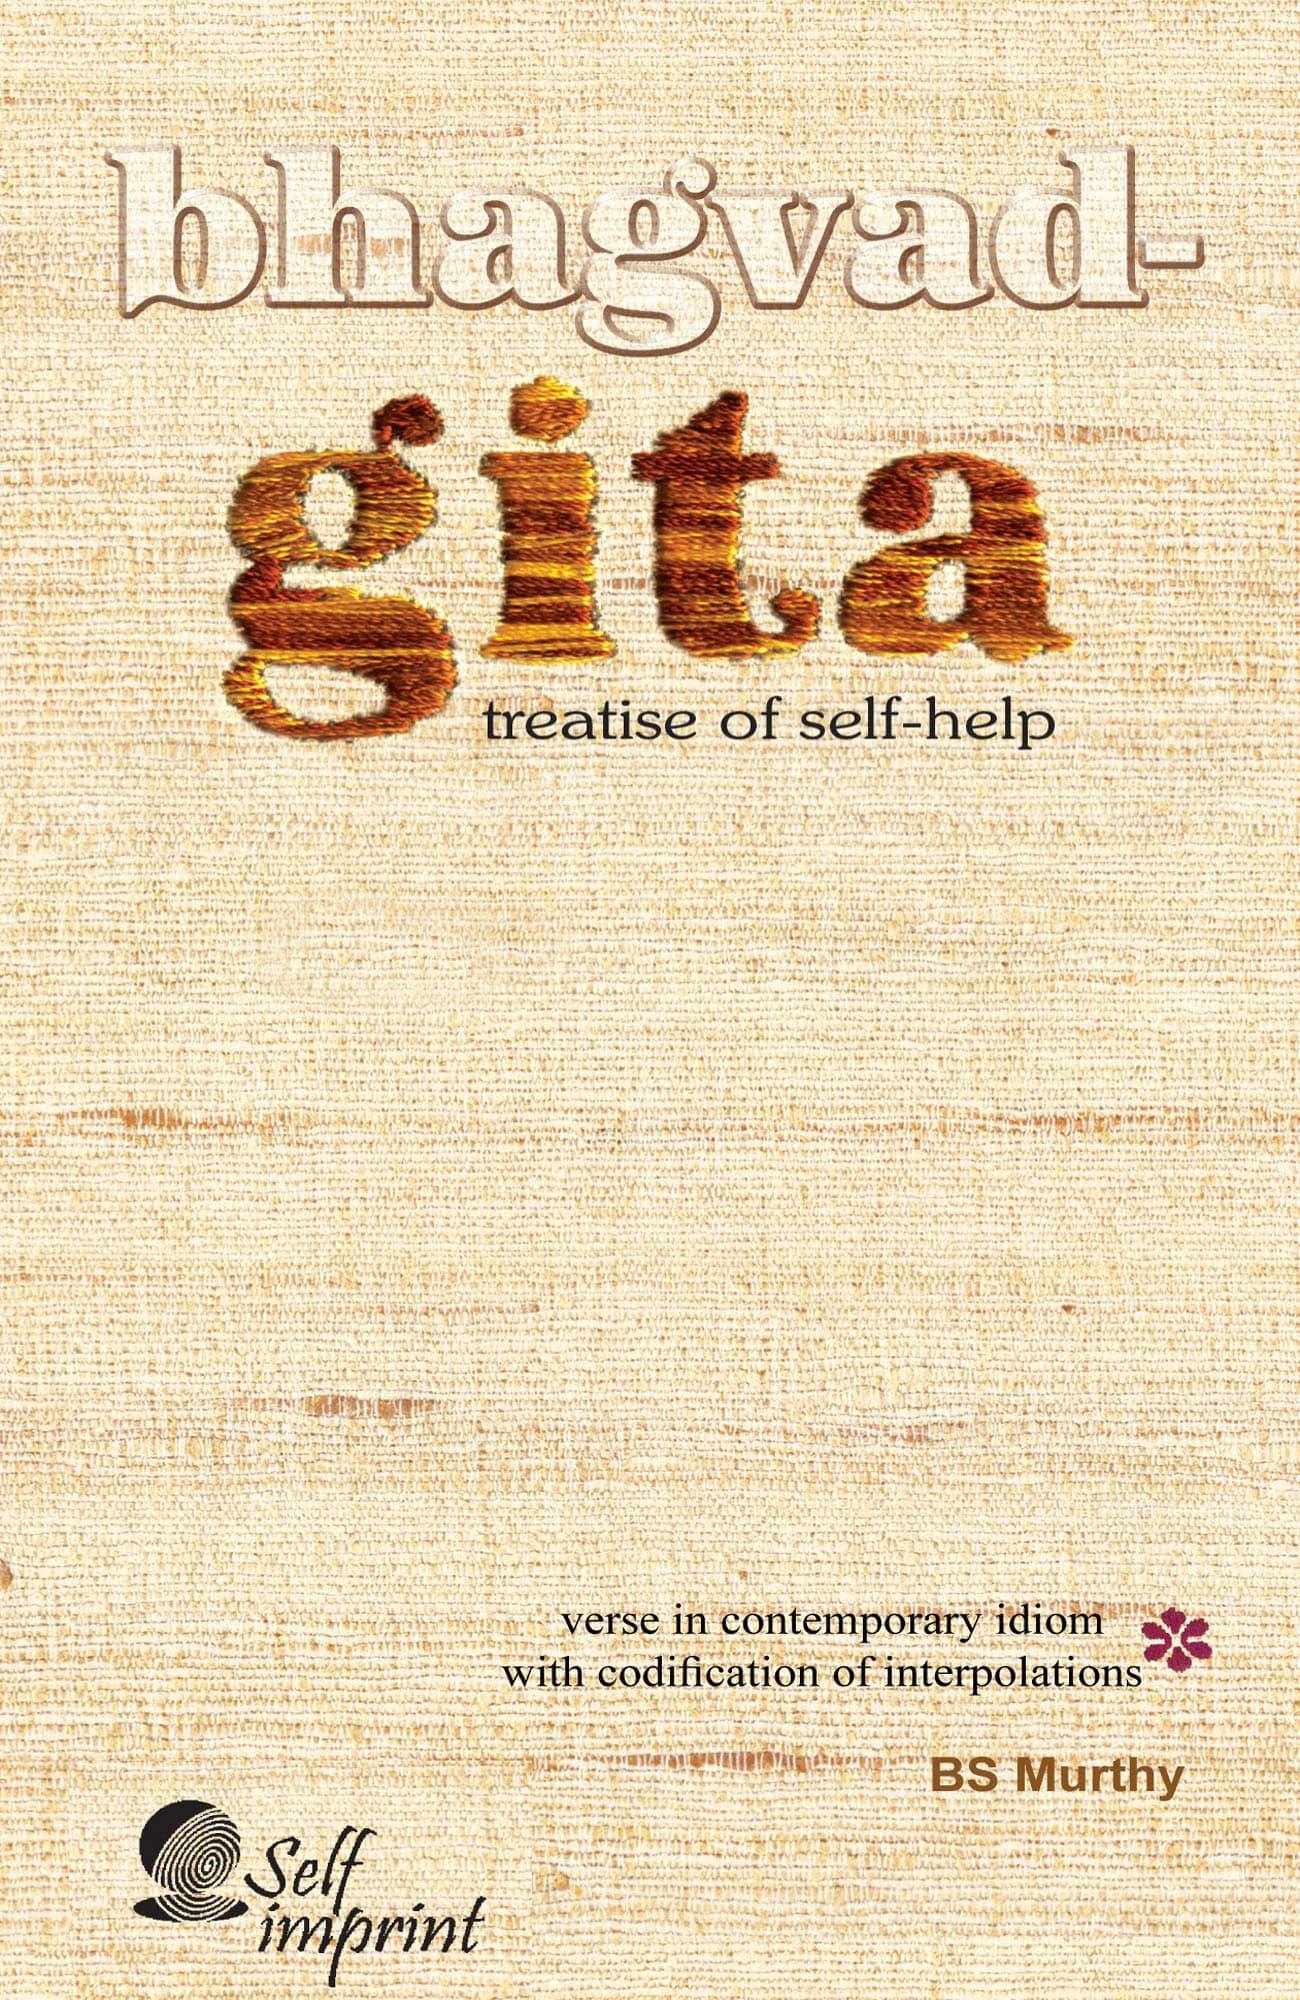 Download books sacred spiritual texts and pdf e books part 2 bhagvad gita treatise of fandeluxe Image collections